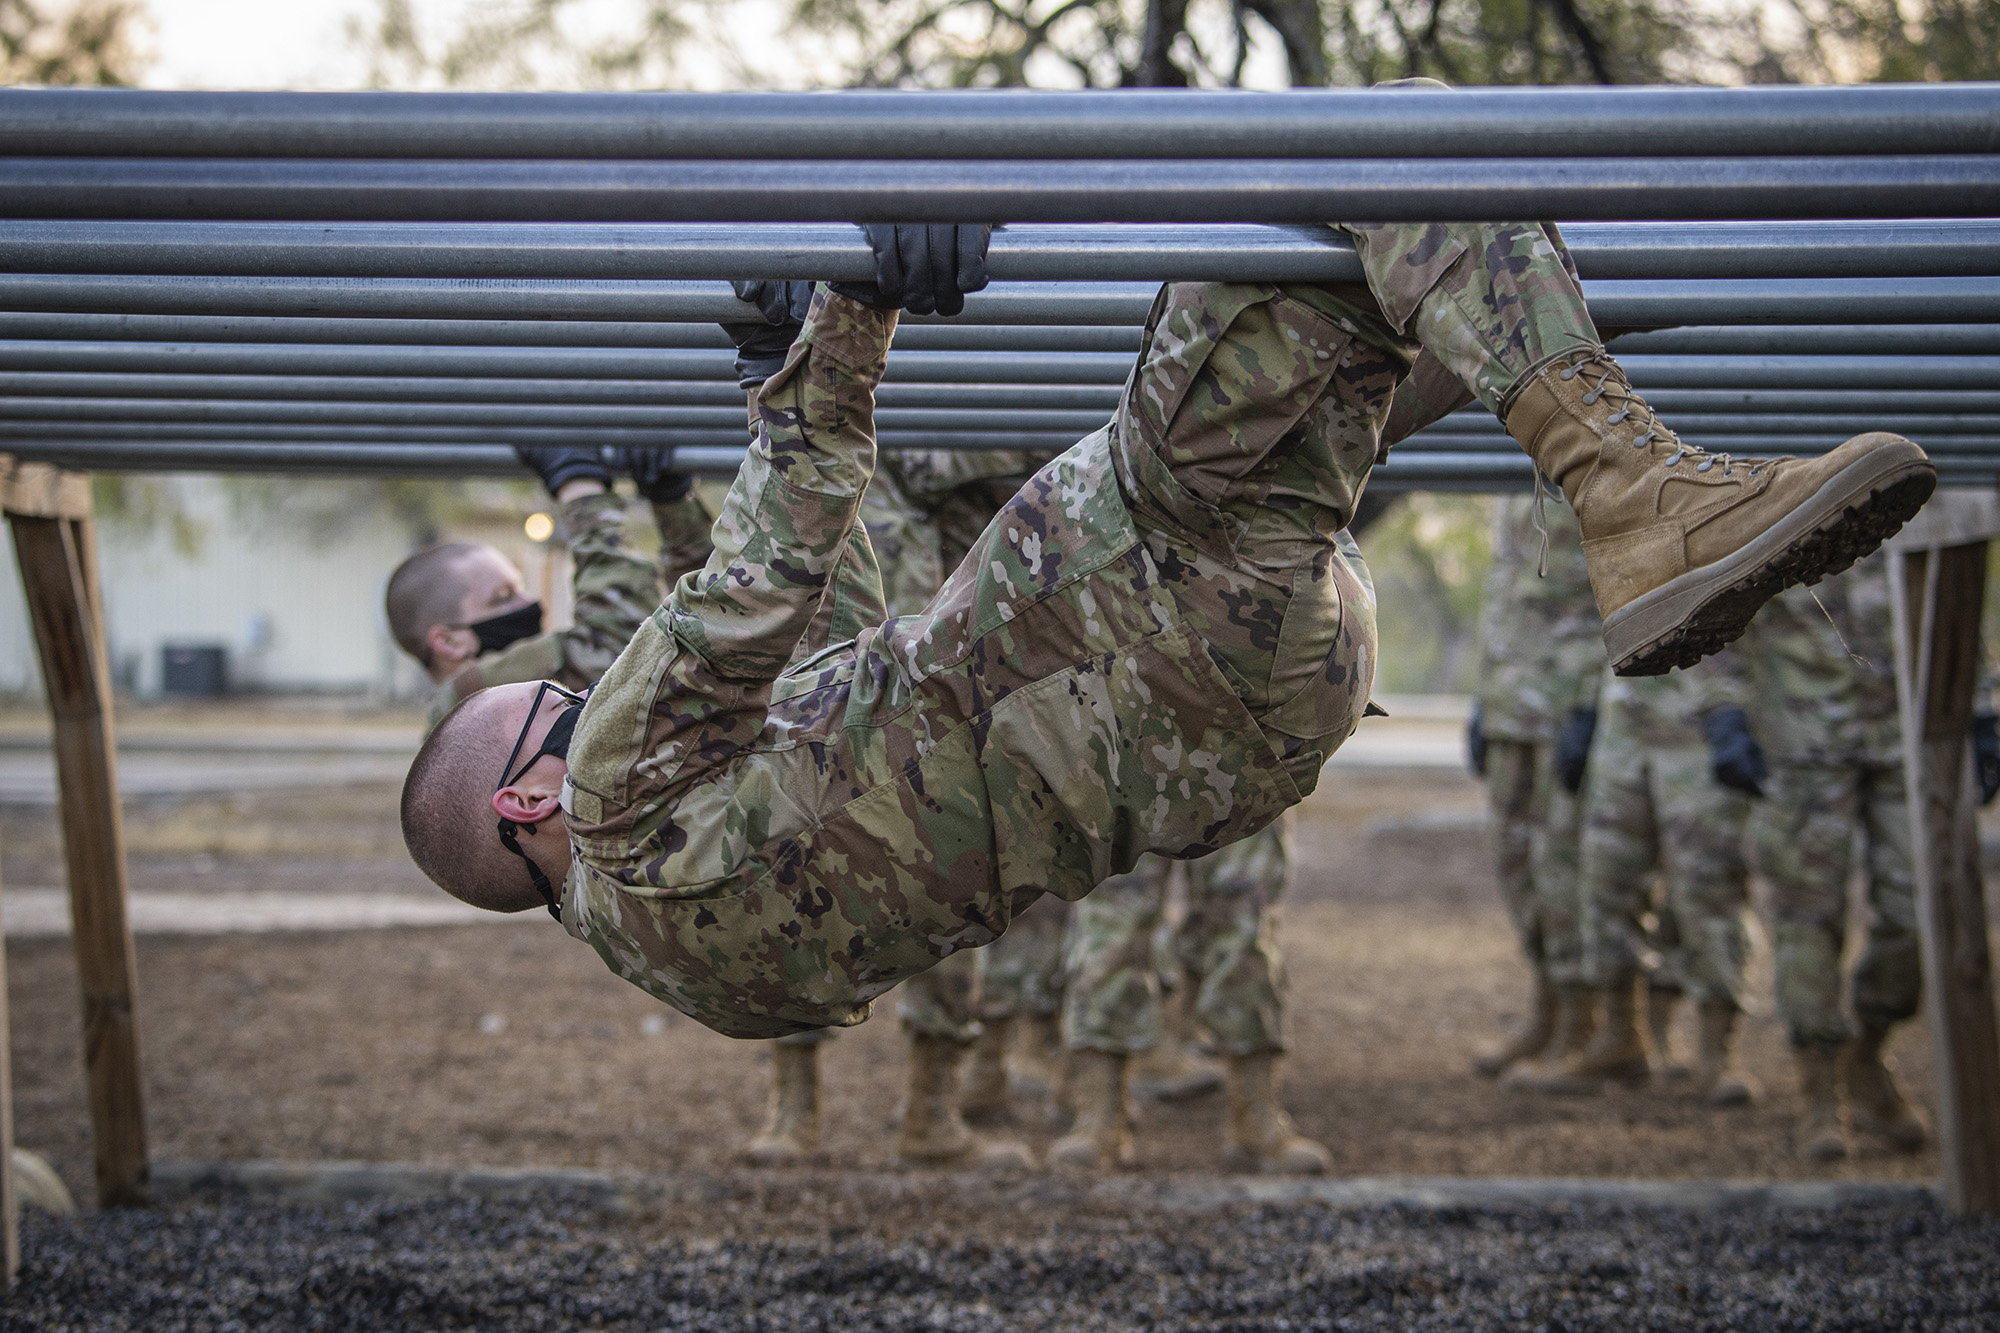 A U.S. Space Force trainee participates on the over-and-under bars obstacle during Basic Expeditionary Airman Skills Training at Joint Base San Antonio-Chapman Annex, Texas, Dec. 2, 2020. This trainee was among the first to attend basic military training before entering the operational Space Force, which was established as the sixth military branch, Dec. 20, 2019. (Staff Sgt. James R. Crow/Air Force)